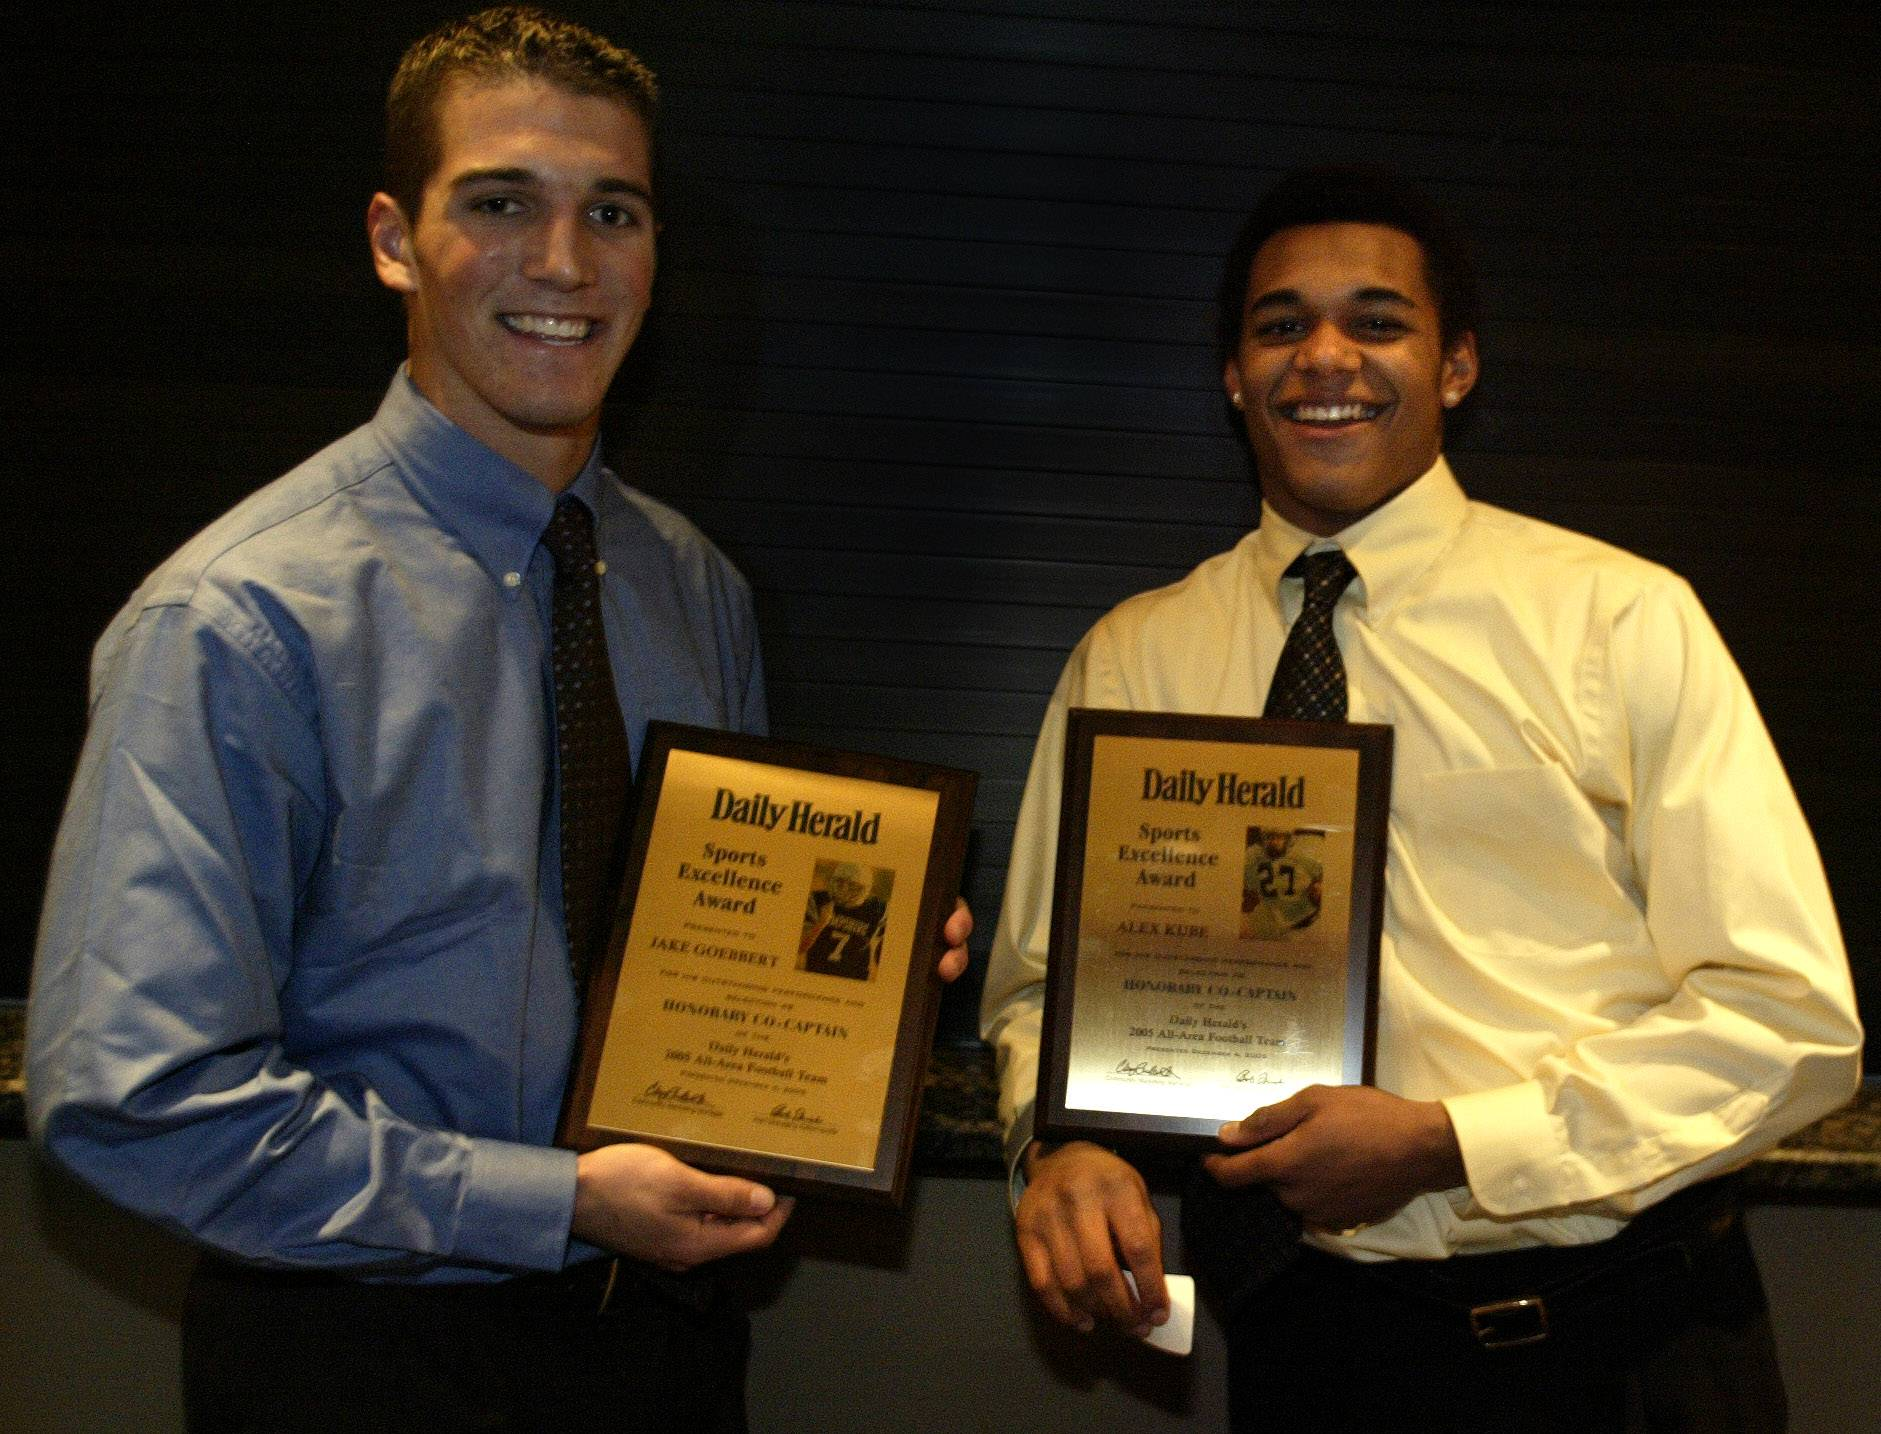 2005 Daily Herald/Fox Valley All-area football captains Jake Goebbert of Hampshire, left, Alex Kube of Cary-Grove pose with their awards at the all-area recognition banquet.